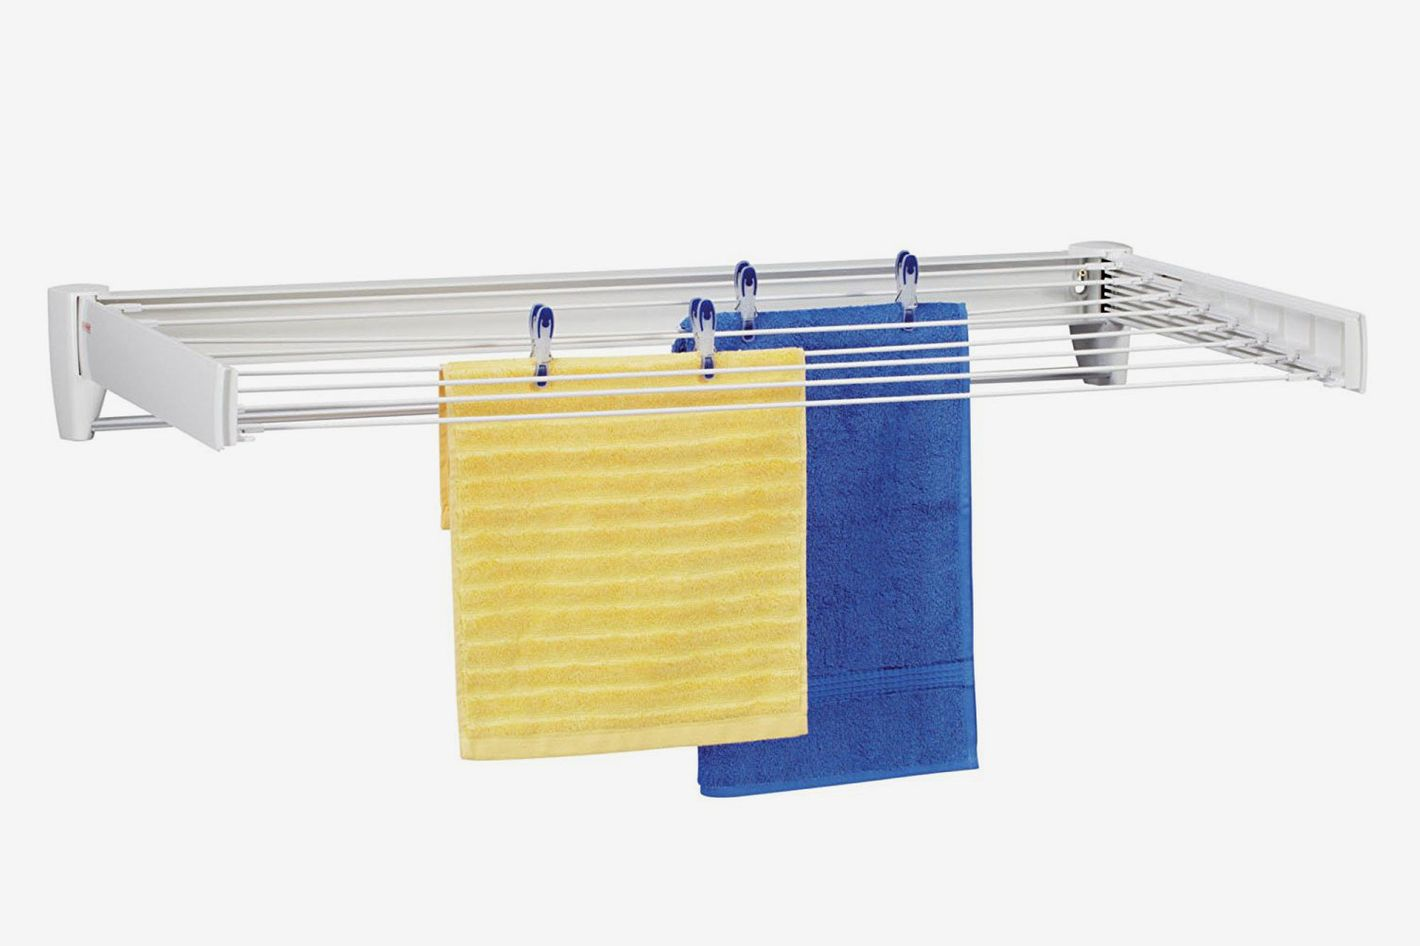 Leifheit 83100 Telefix 100 Wall Mount Retractable Clothes Drying Rack